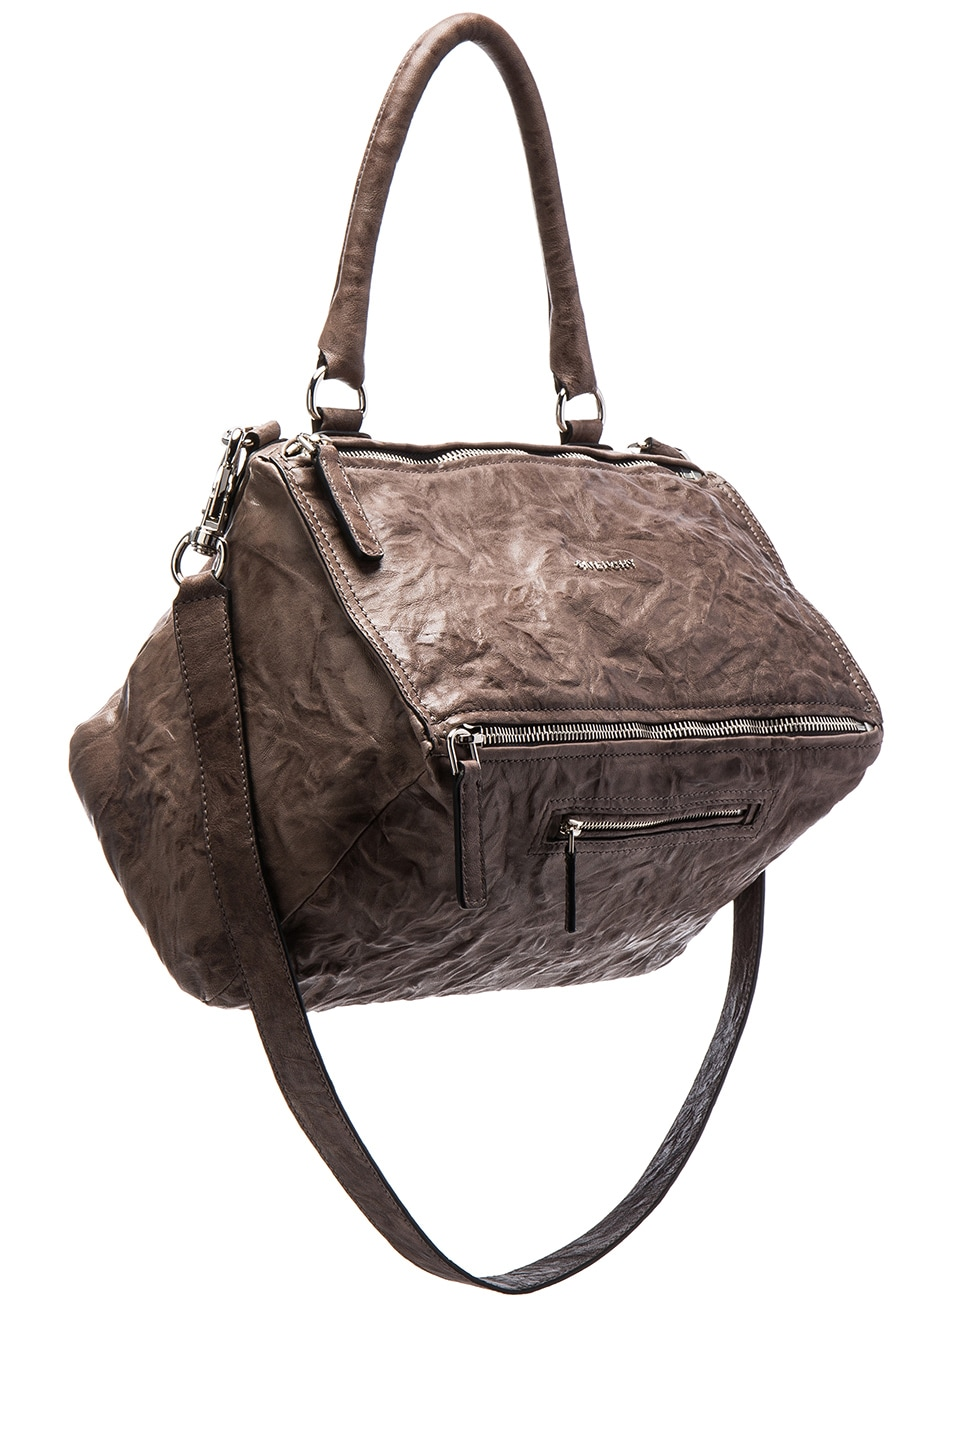 Image 1 of Givenchy Old Pepe Medium Pandora Bag in Anthracite